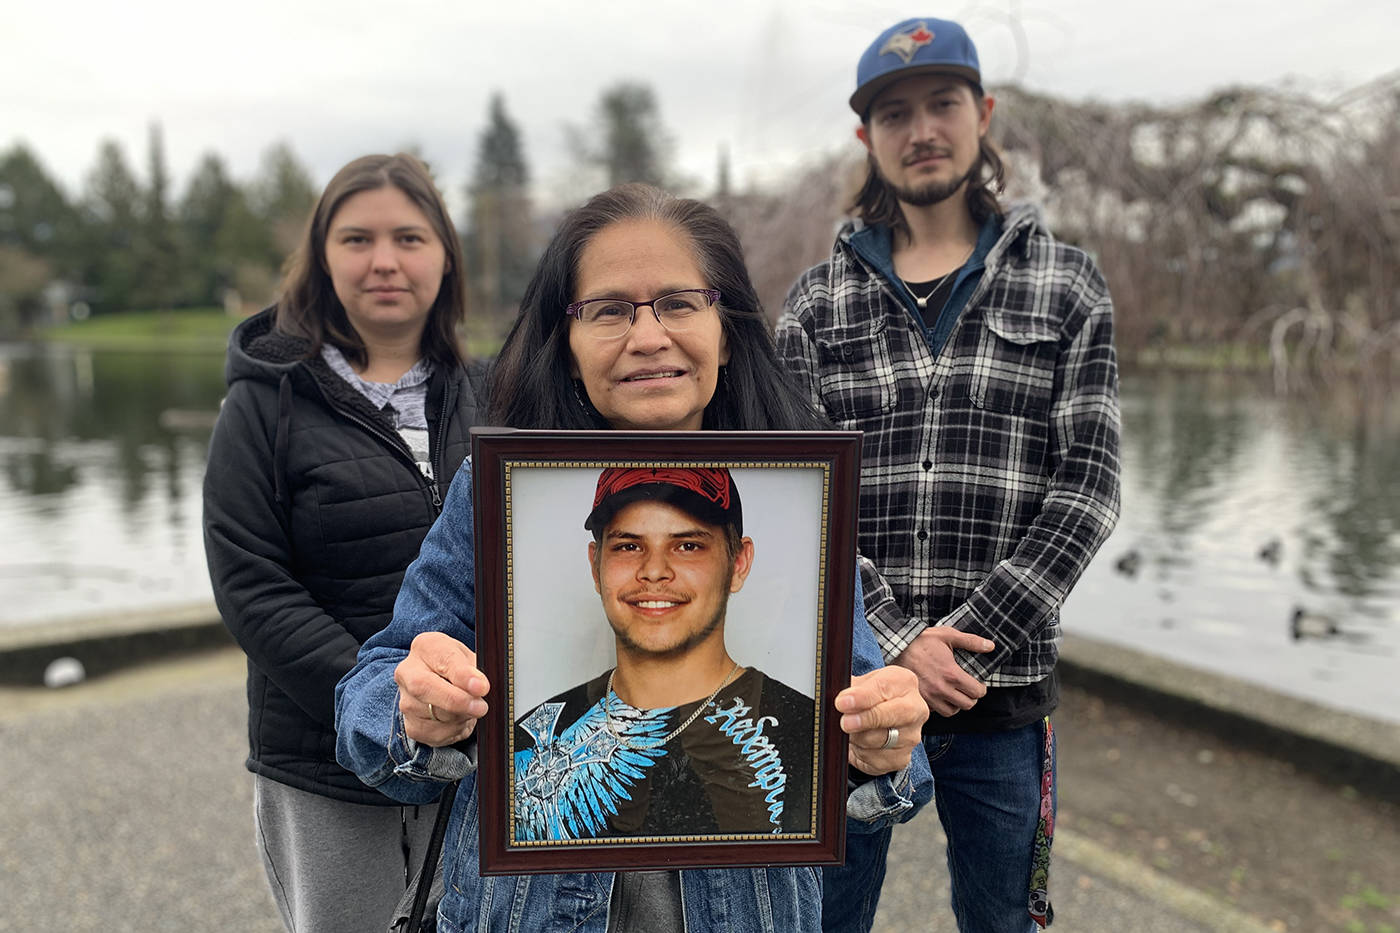 Flanked by her daughter Sarah and eldest son Jared, Maggie Smith holds a photograph of her son Tim Postma who died on the streets of Chilliwack on Jan. 22, 2020. (Paul Henderson/ The Progress)